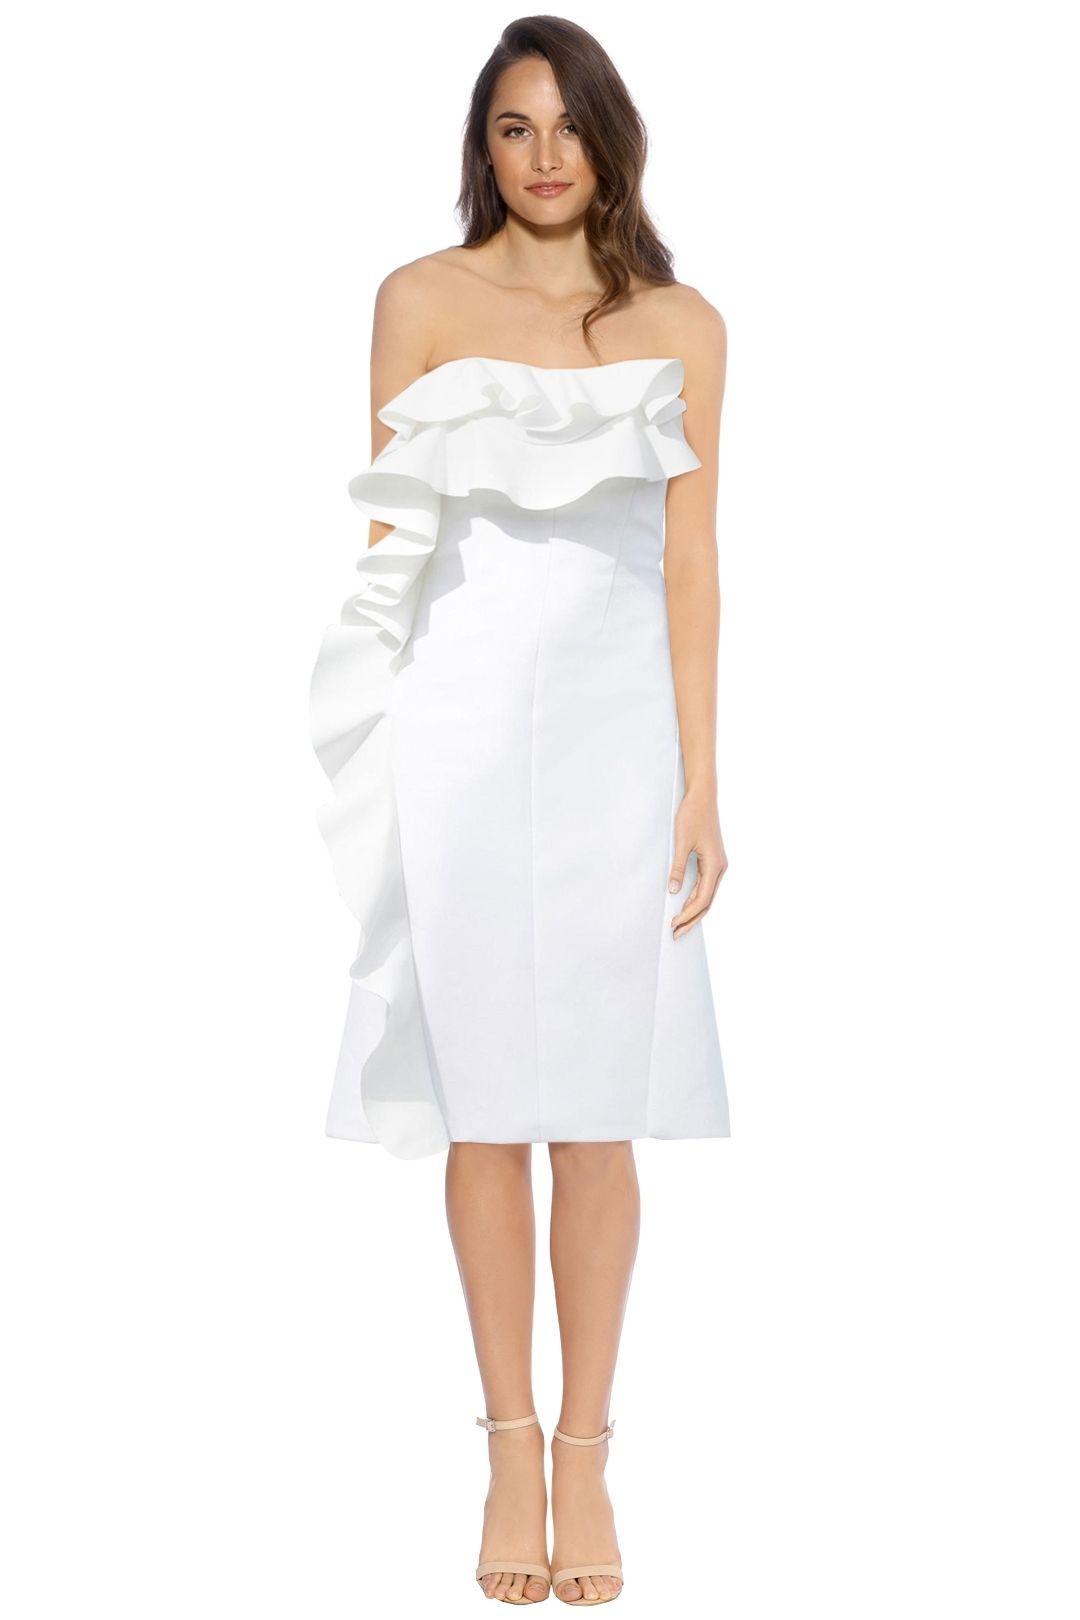 By Johnny - Tess Angel Strapless Dress - White - Front